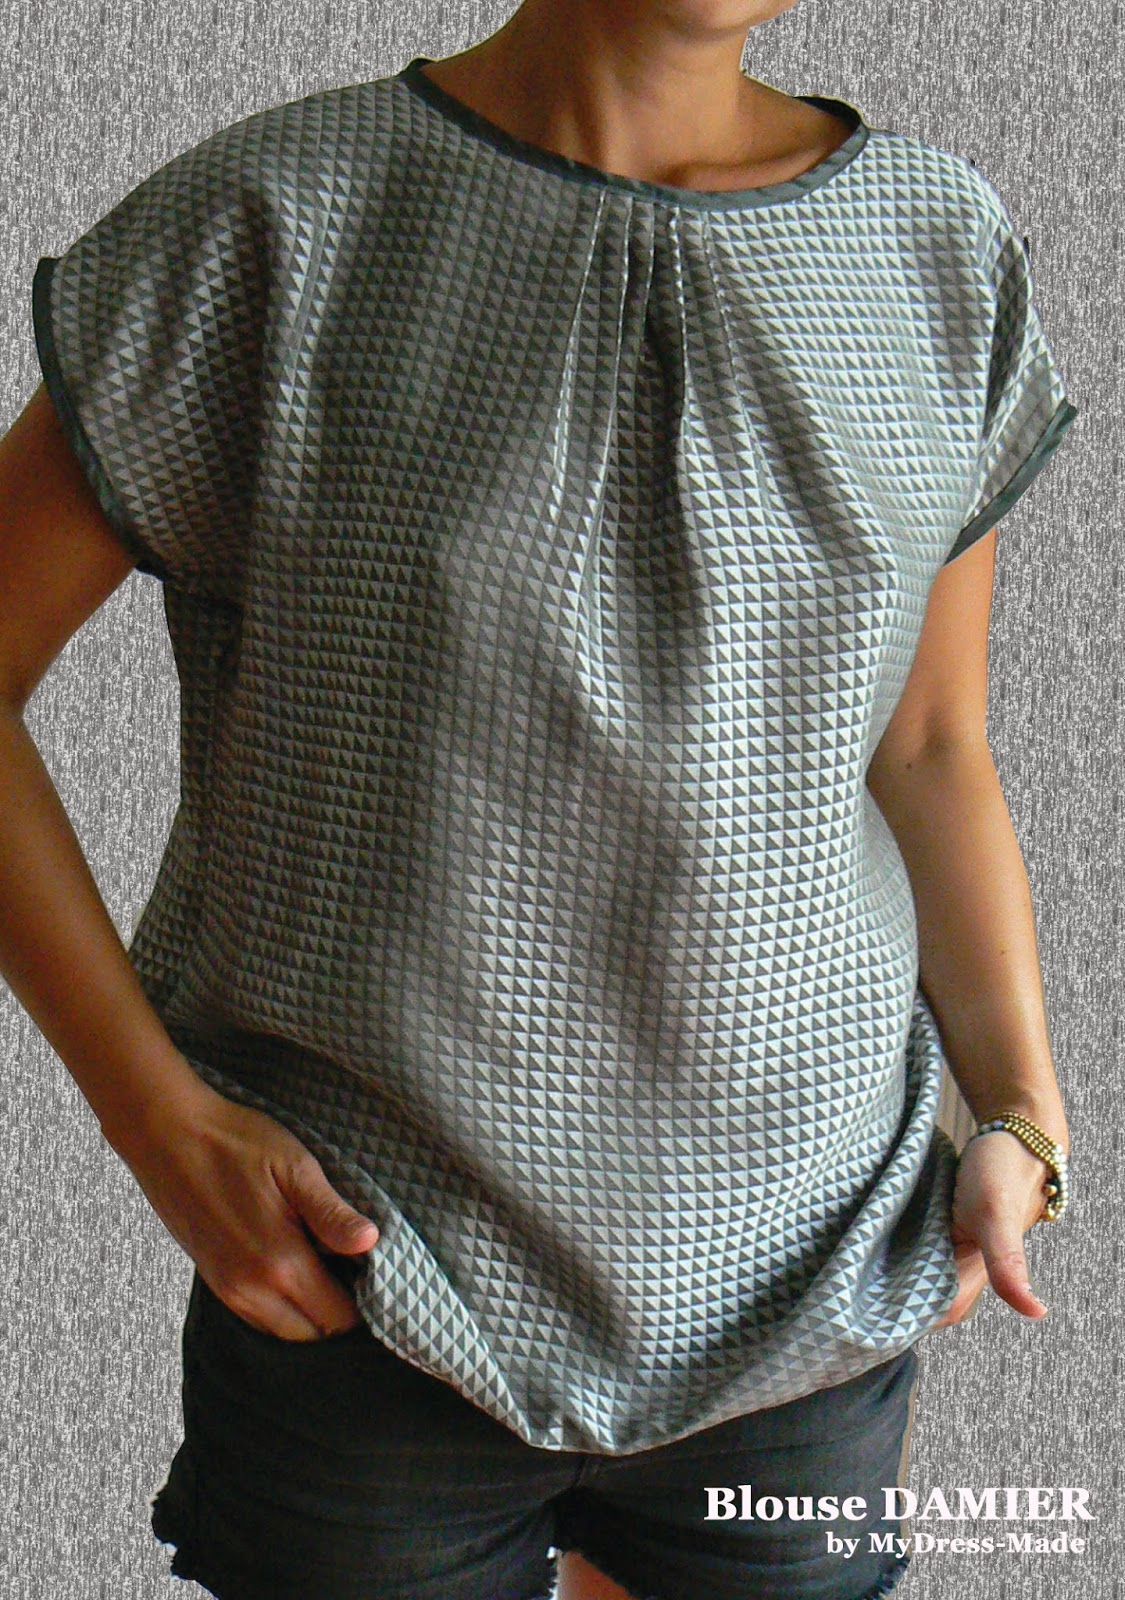 Blouse DAMIER by MDM